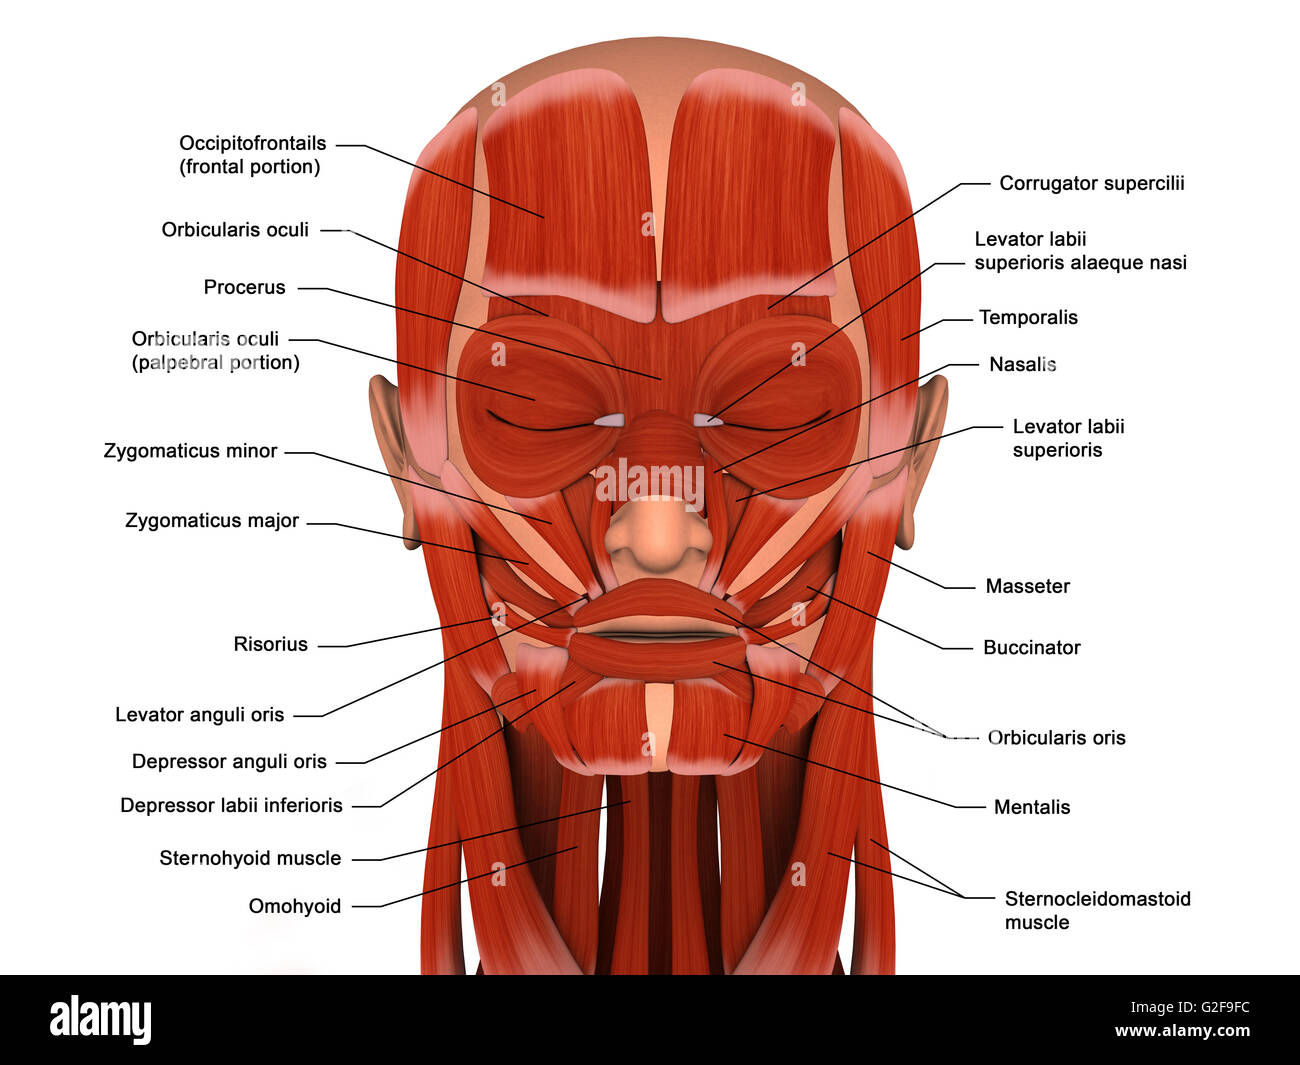 Facial Muscles Of The Human Head With Labels Stock Photo Royalty Free Image